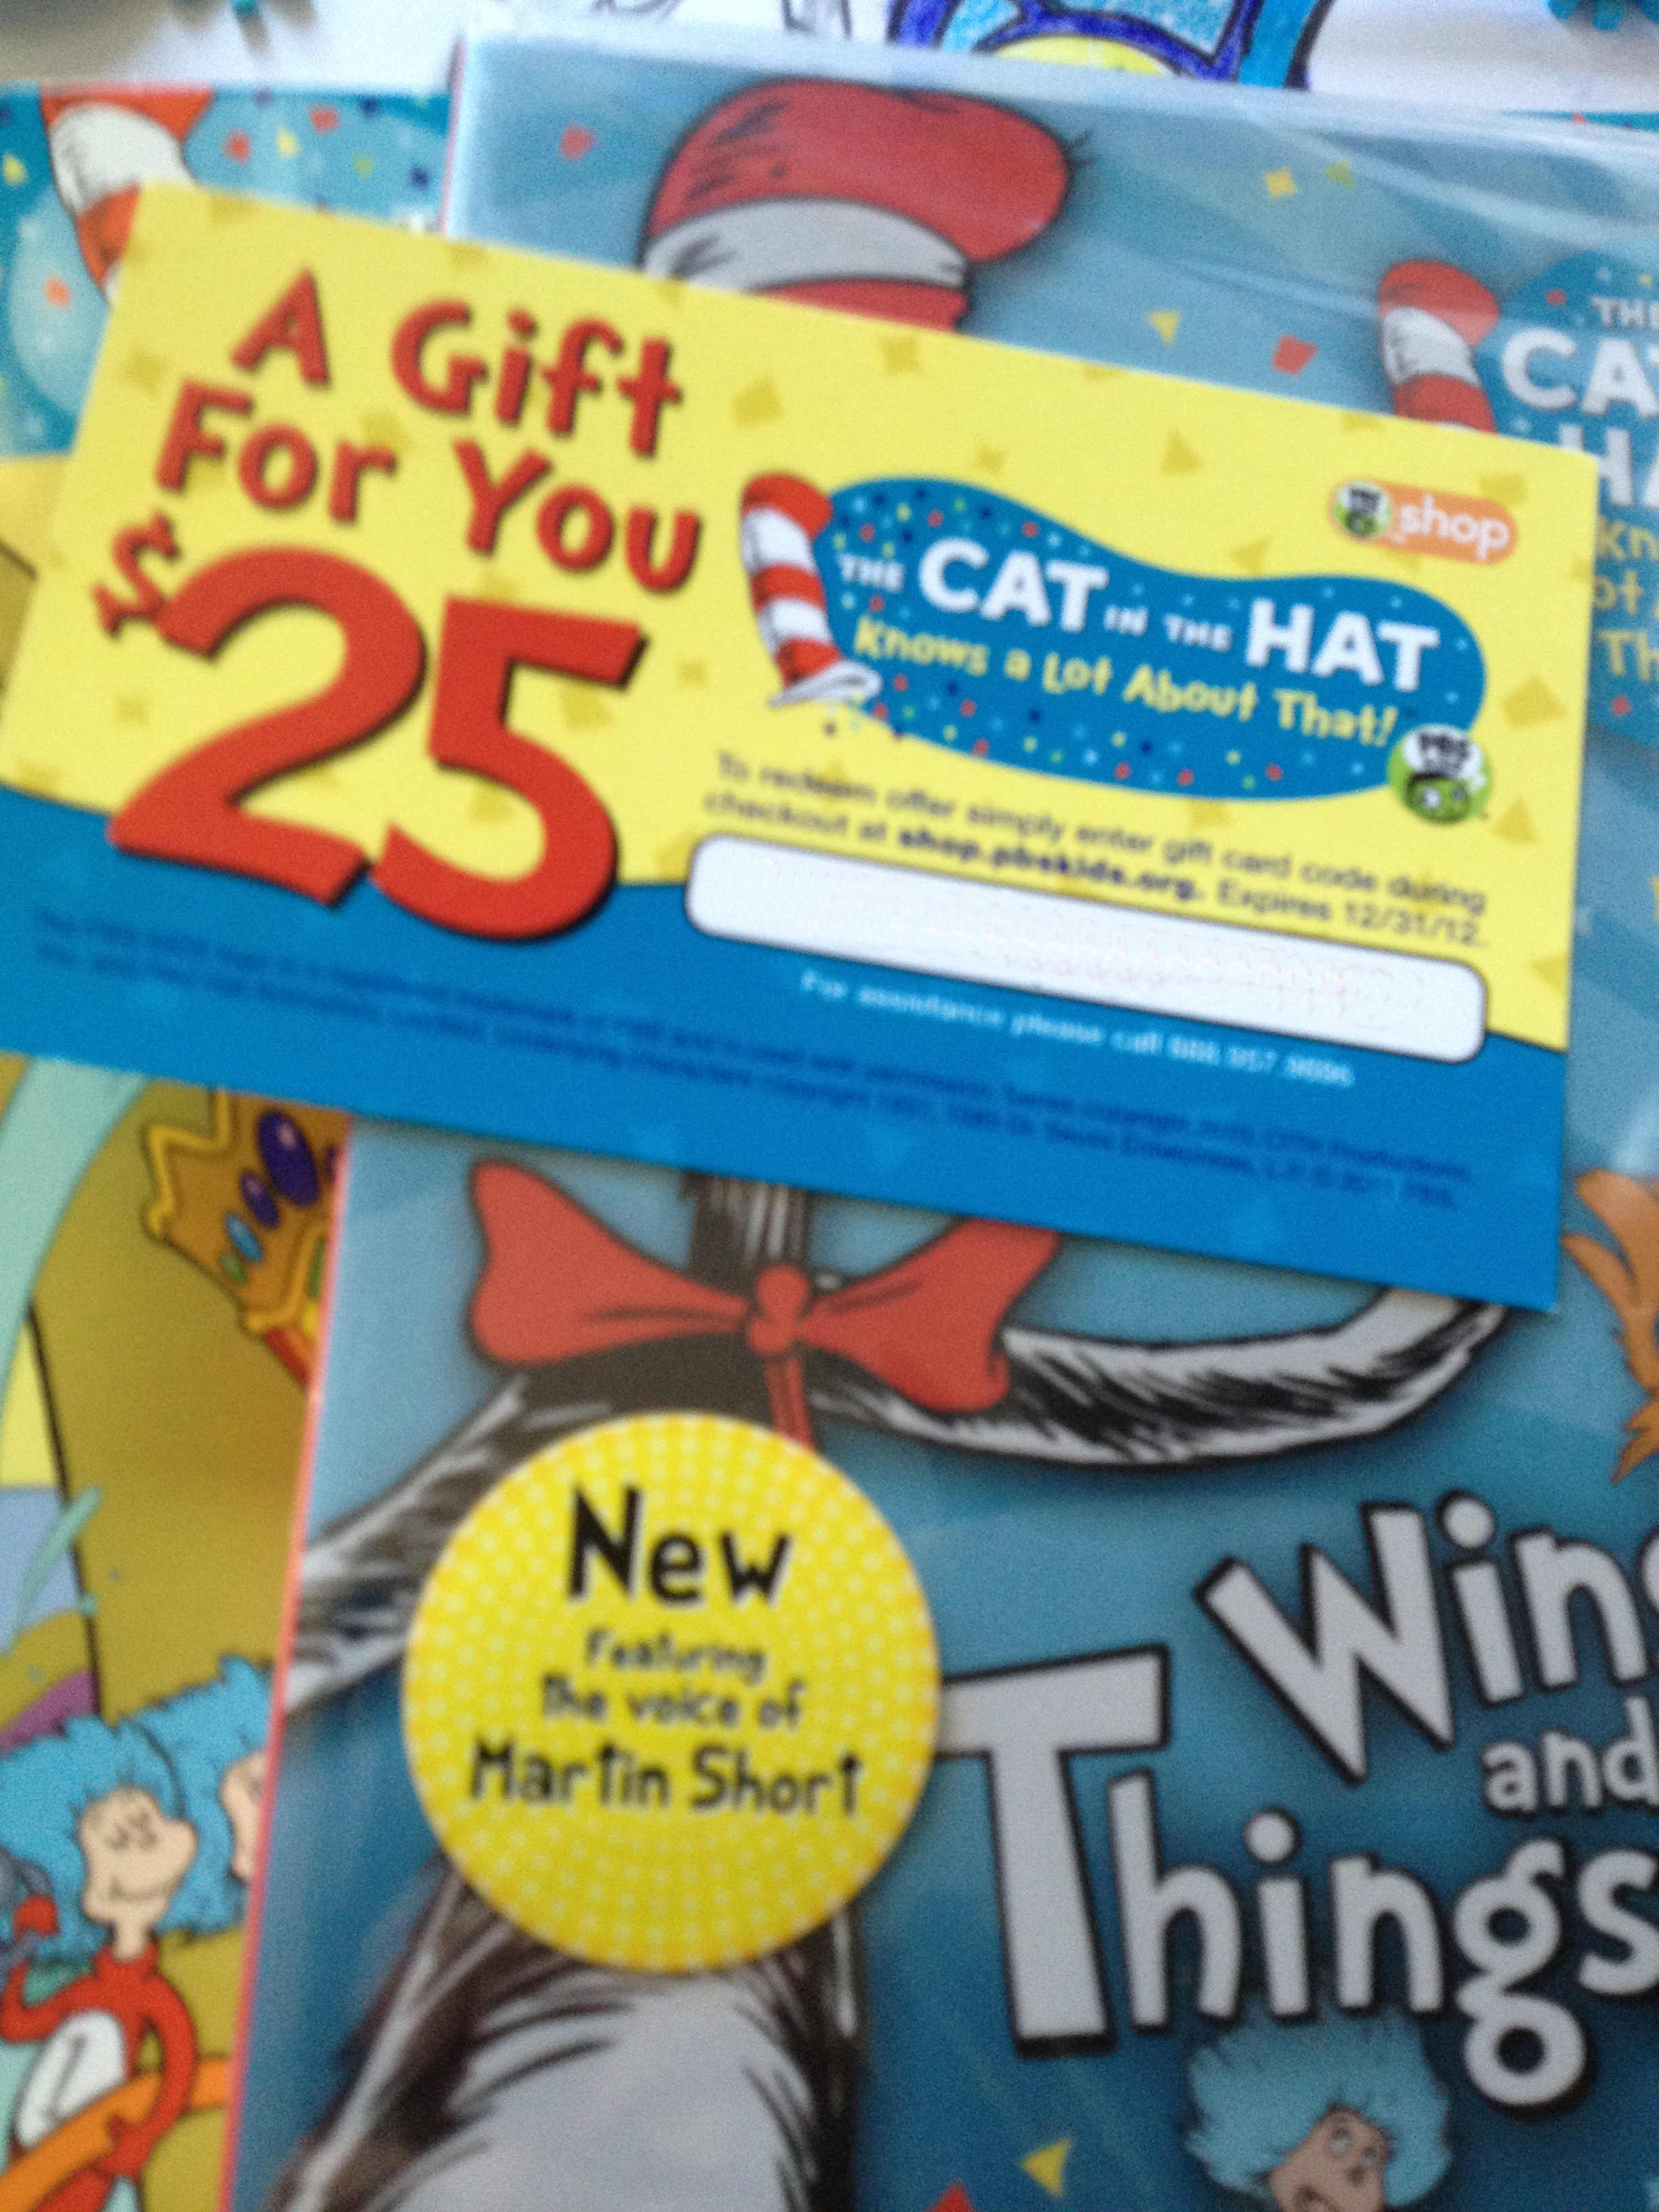 Cat in the Hat Knows A Lot About That Prize Pack